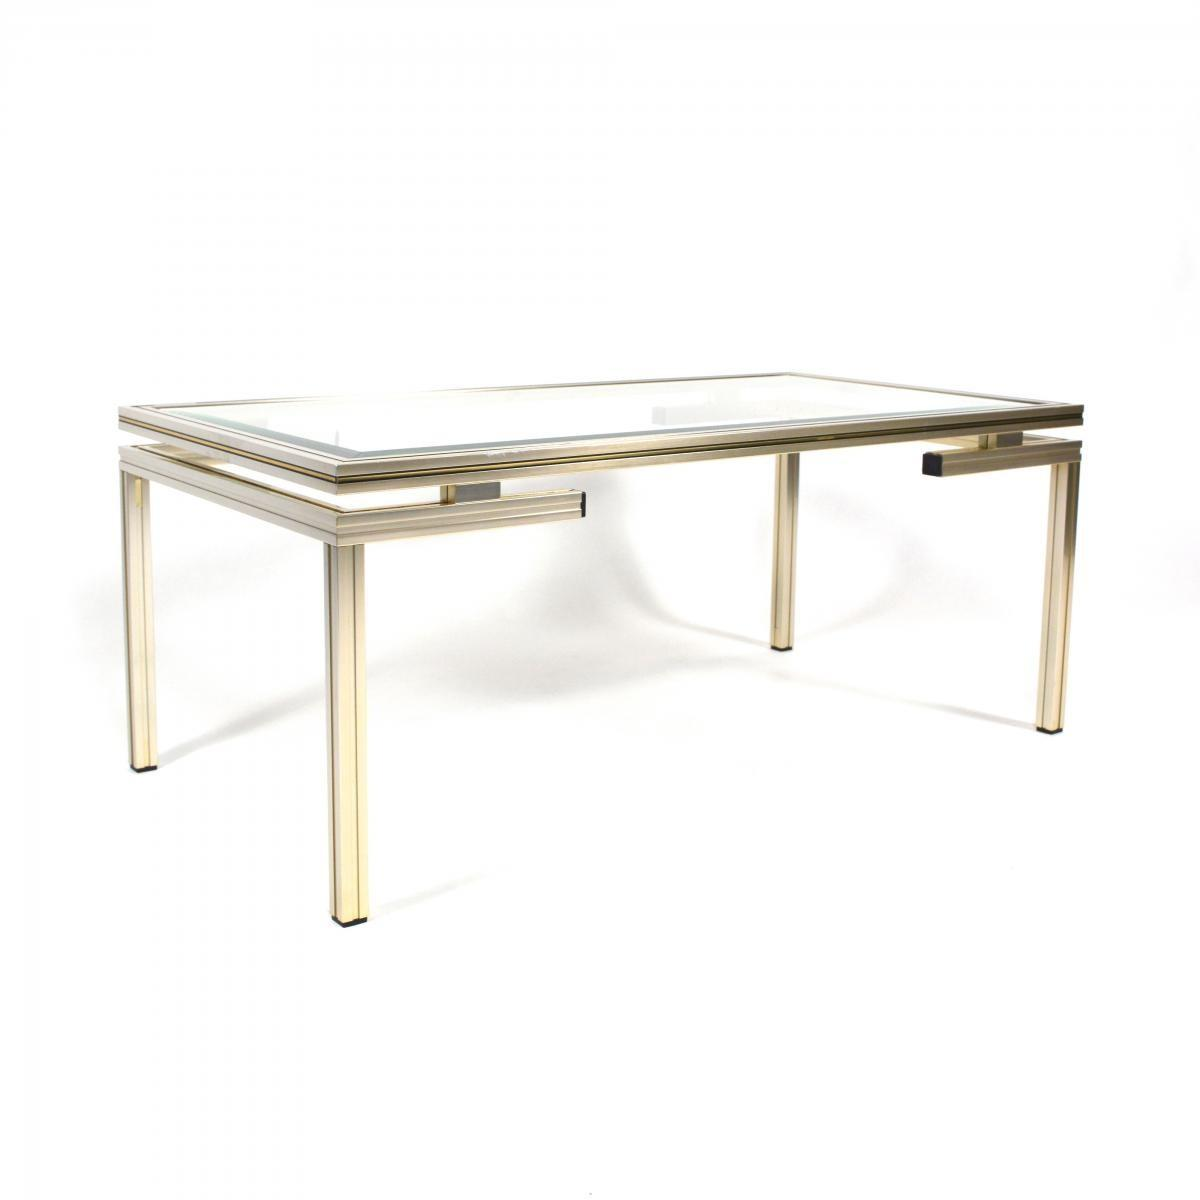 French Silver Gold Coffee Table Pierre Vandel